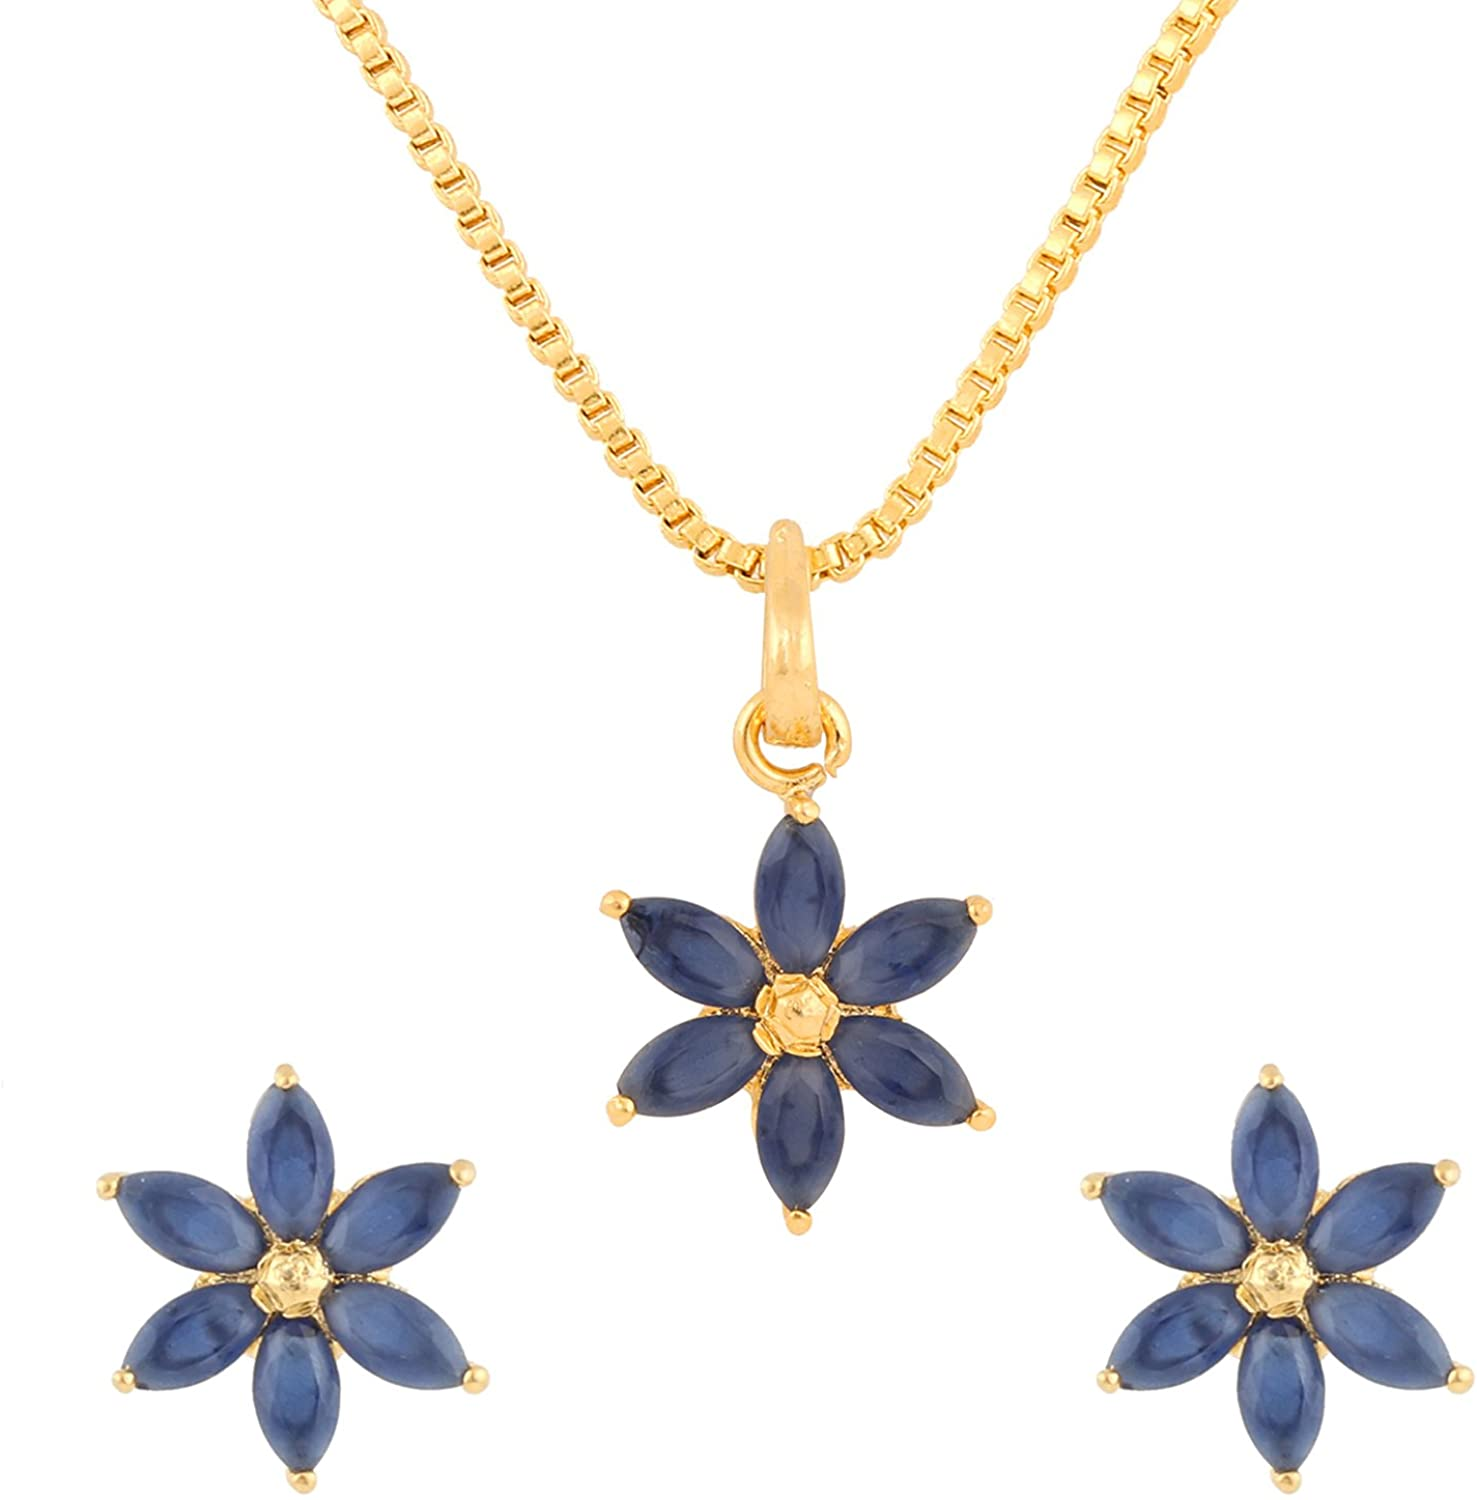 Efulgenz 14K Gold Plated Blue Floral Cubic Zirconia Pendant Necklace and Earrings Jewelry Set for Women Girls Brides Bridesmaids